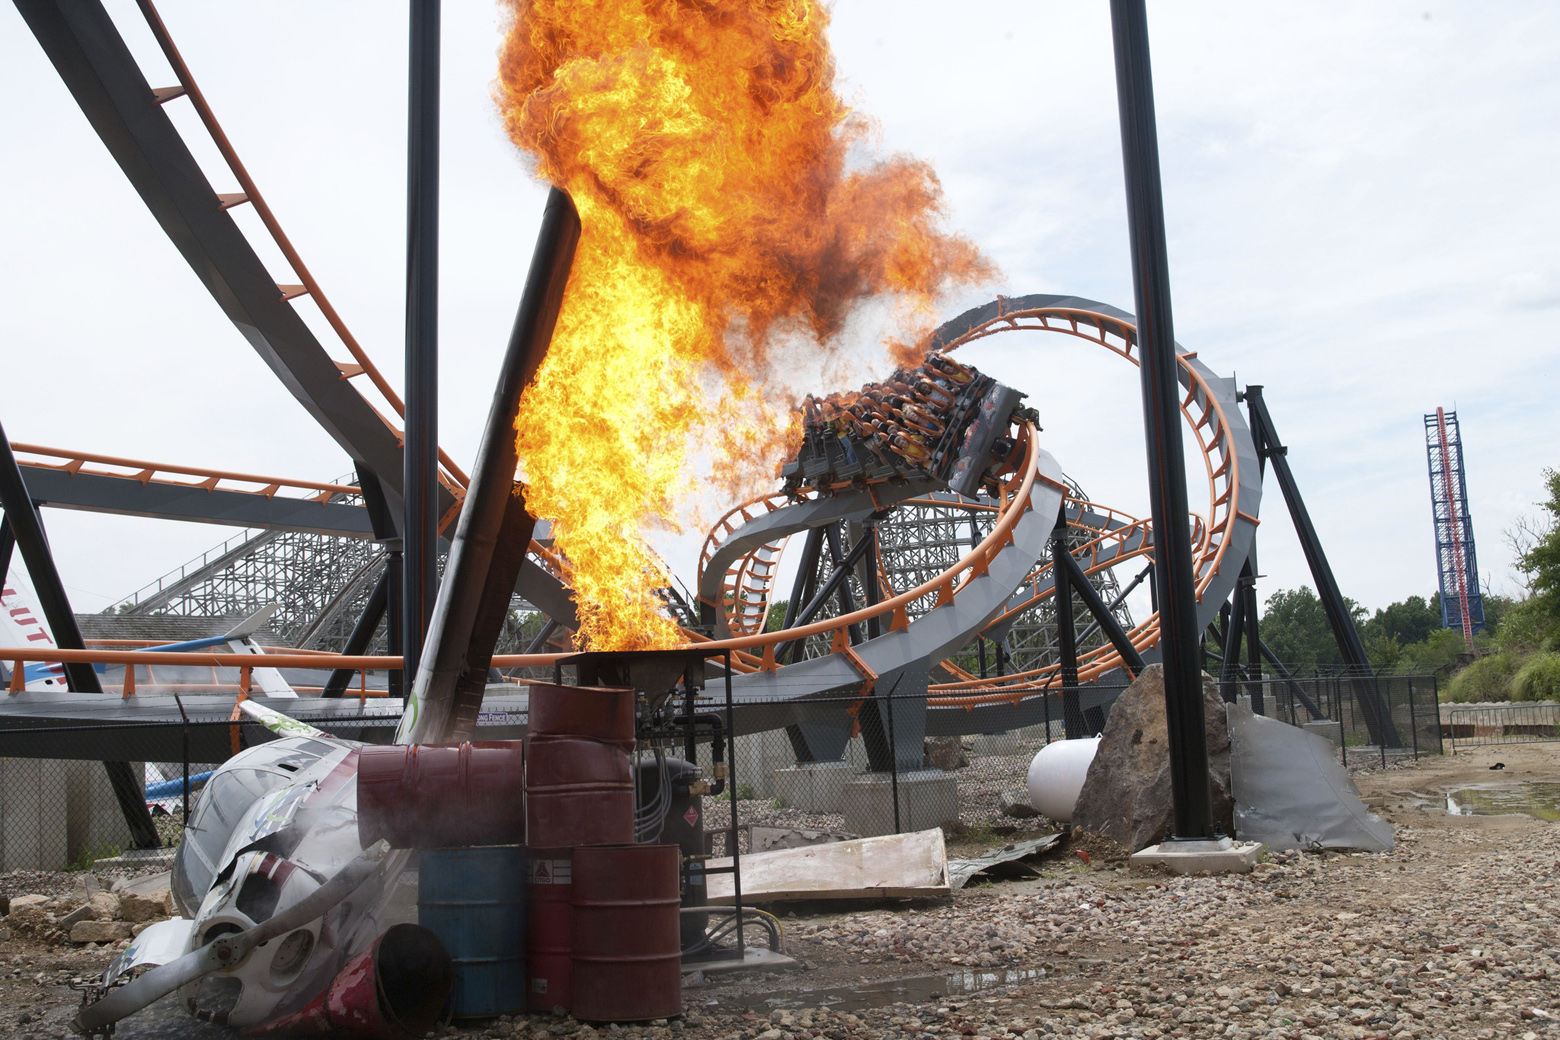 Roller coaster Apocalypse: The Last Stand